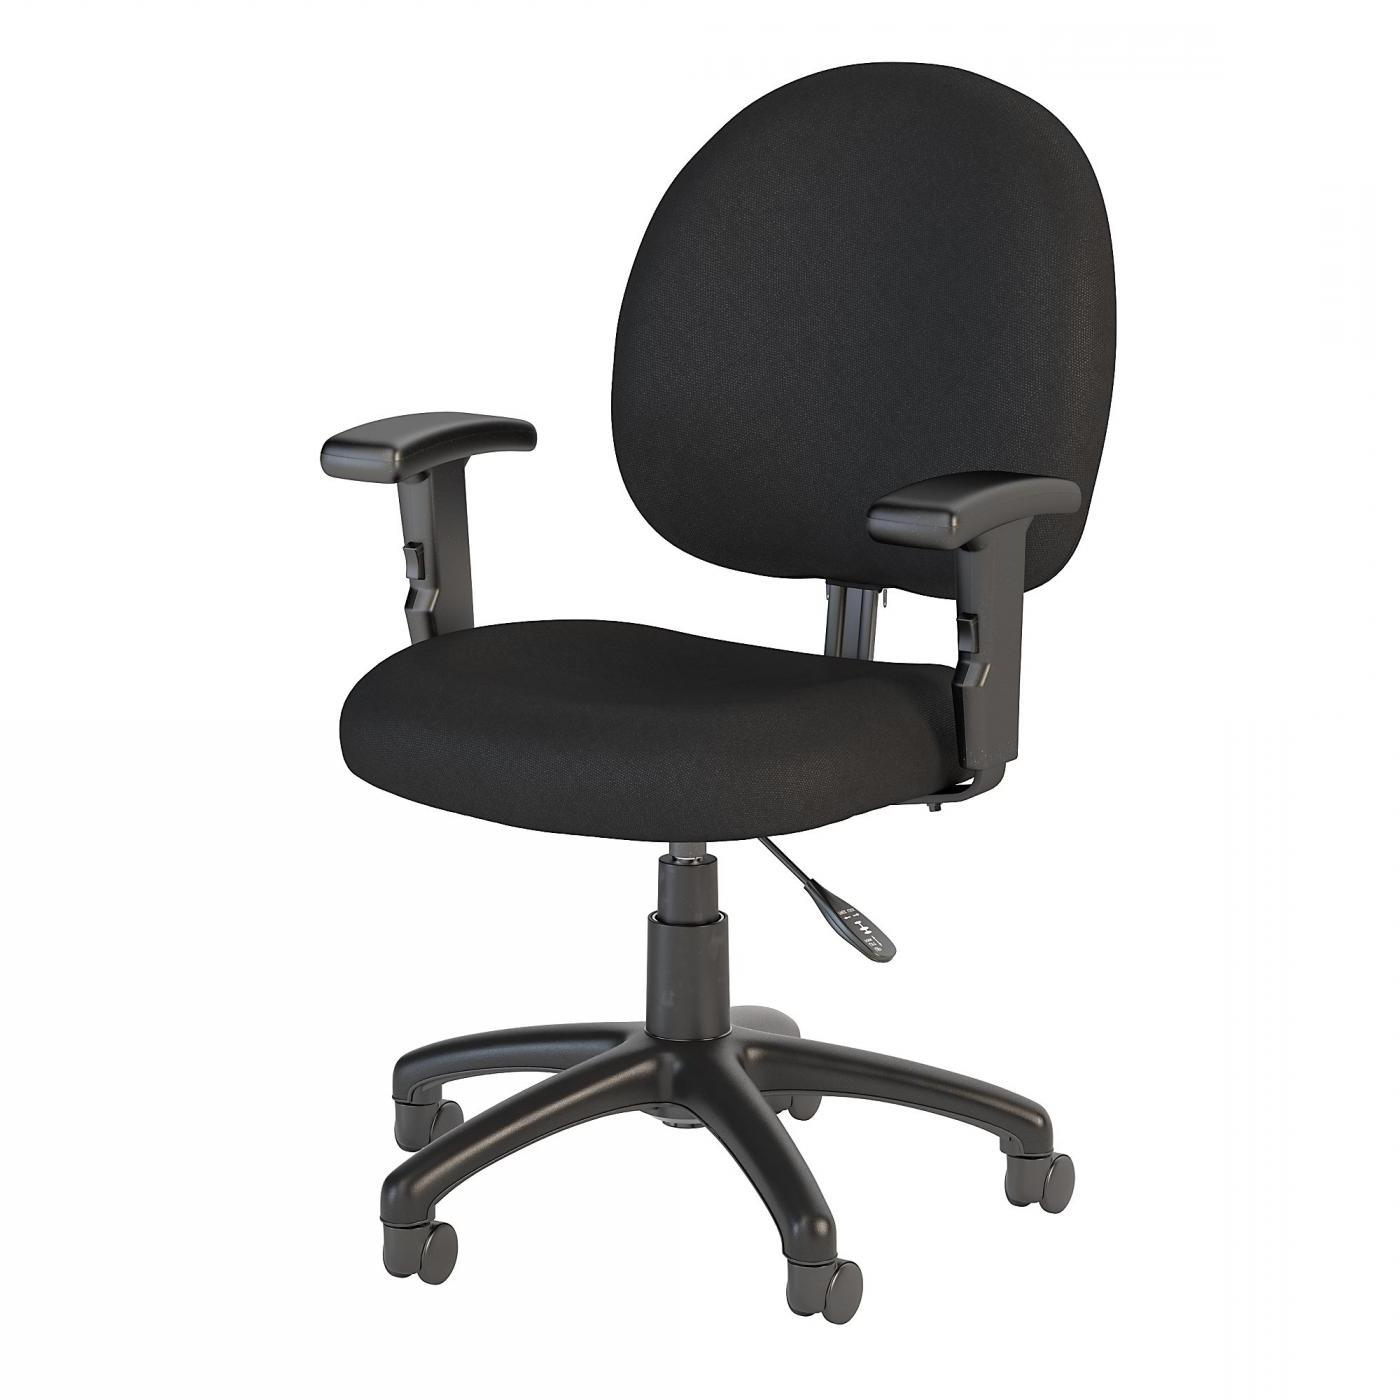 BUSH BUSINESS FURNITURE ACCORD TASK CHAIR WITH ARMS. FREE SHIPPING.